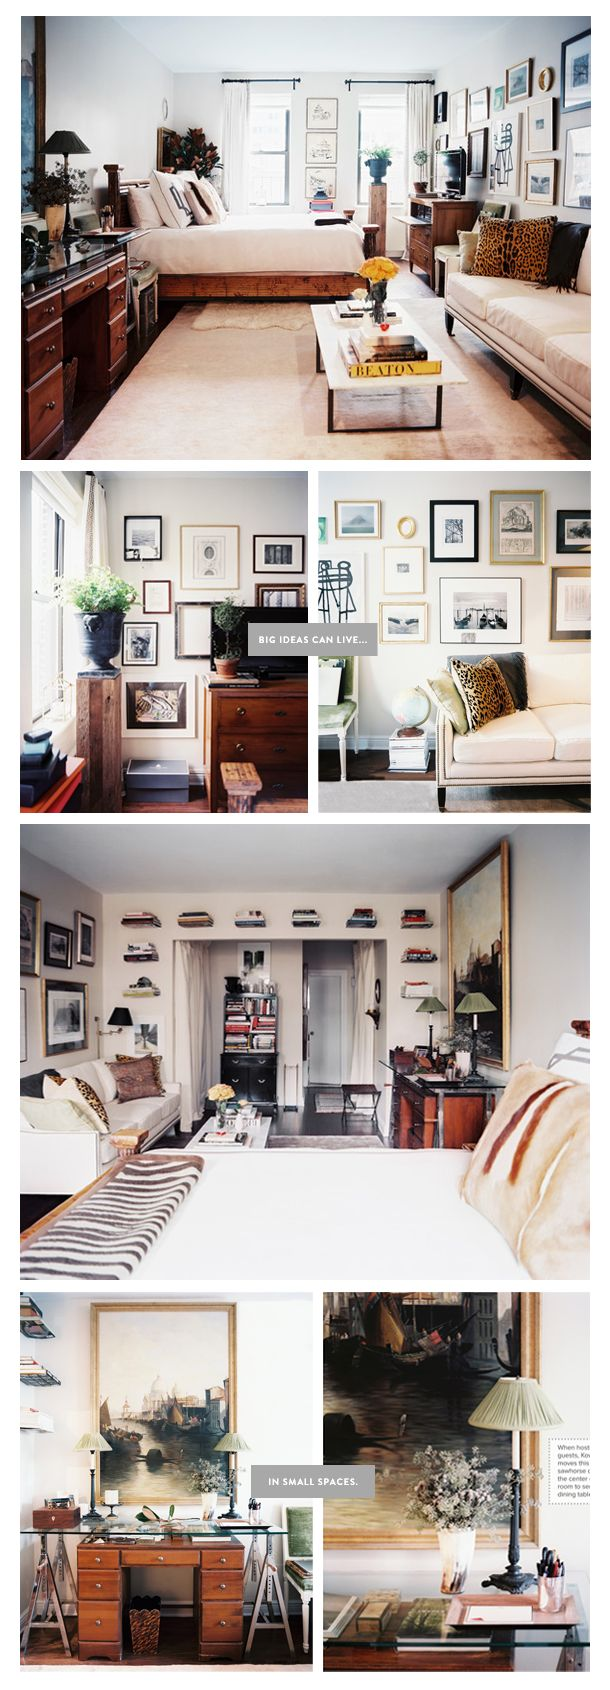 Great small space.